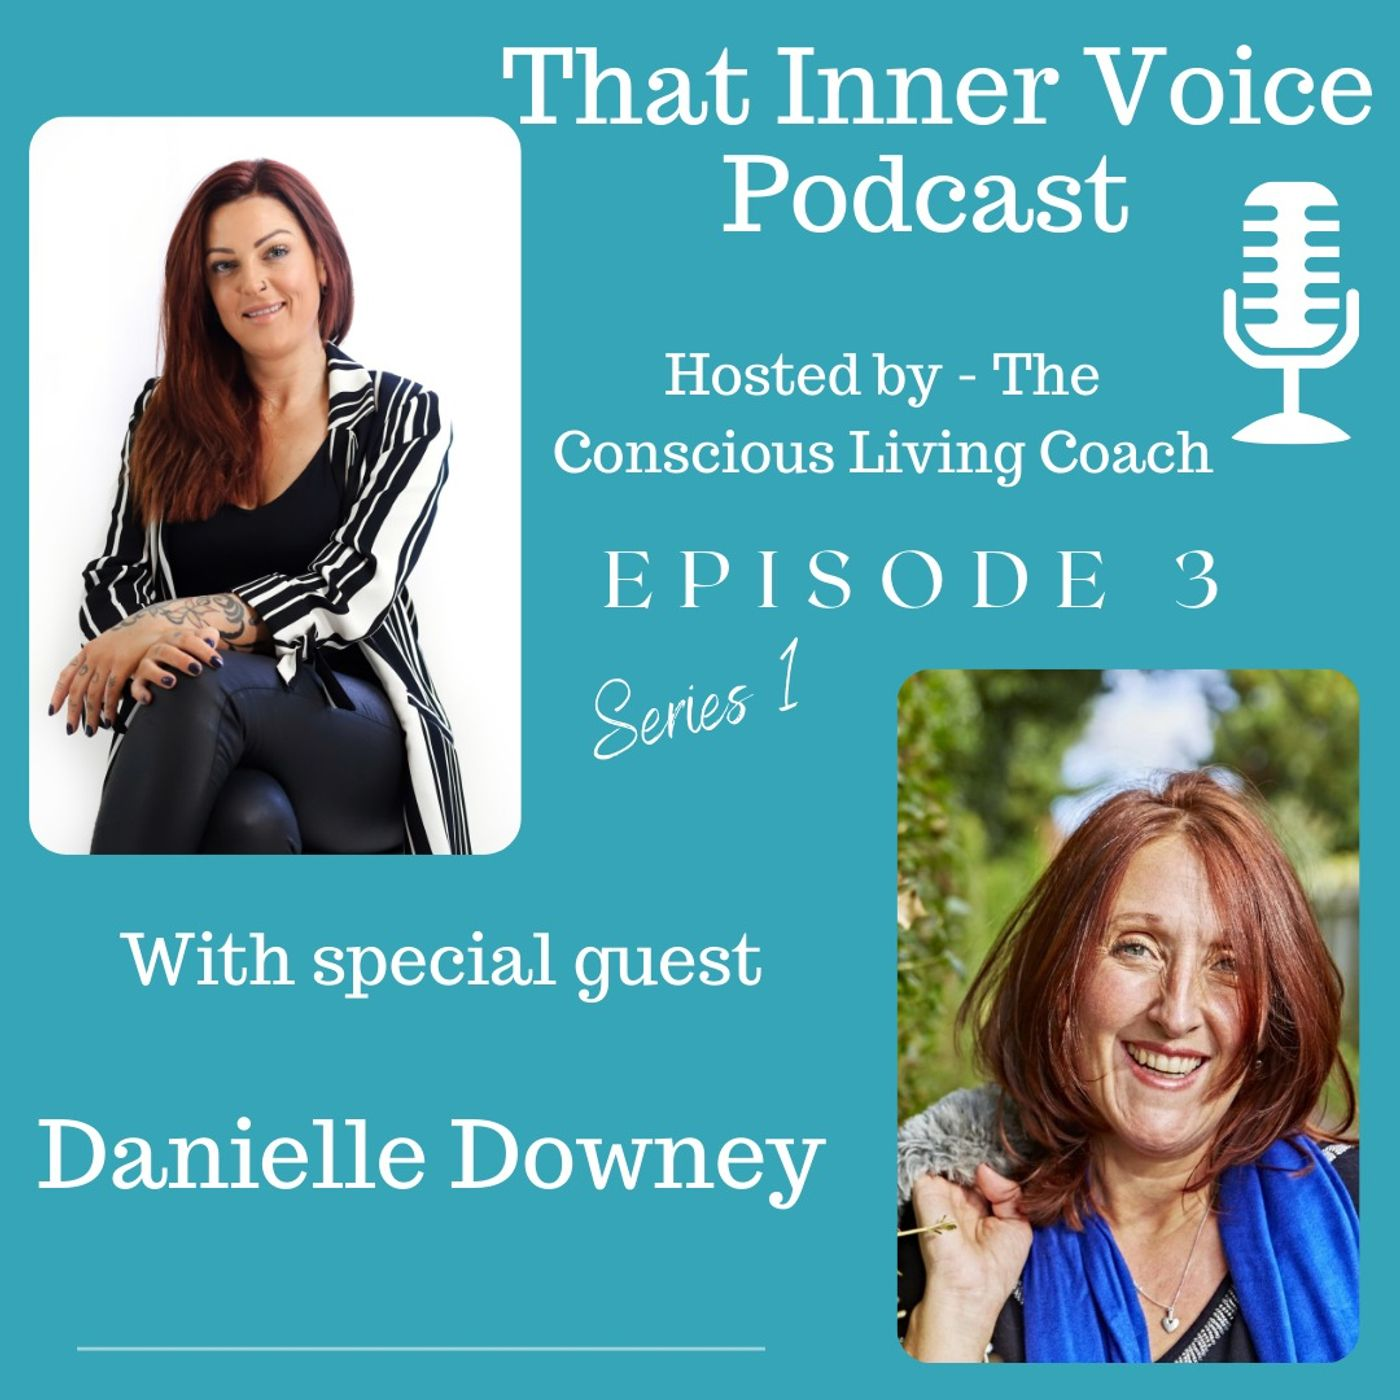 Discussing Mental health and Abuse with Danielle Downey